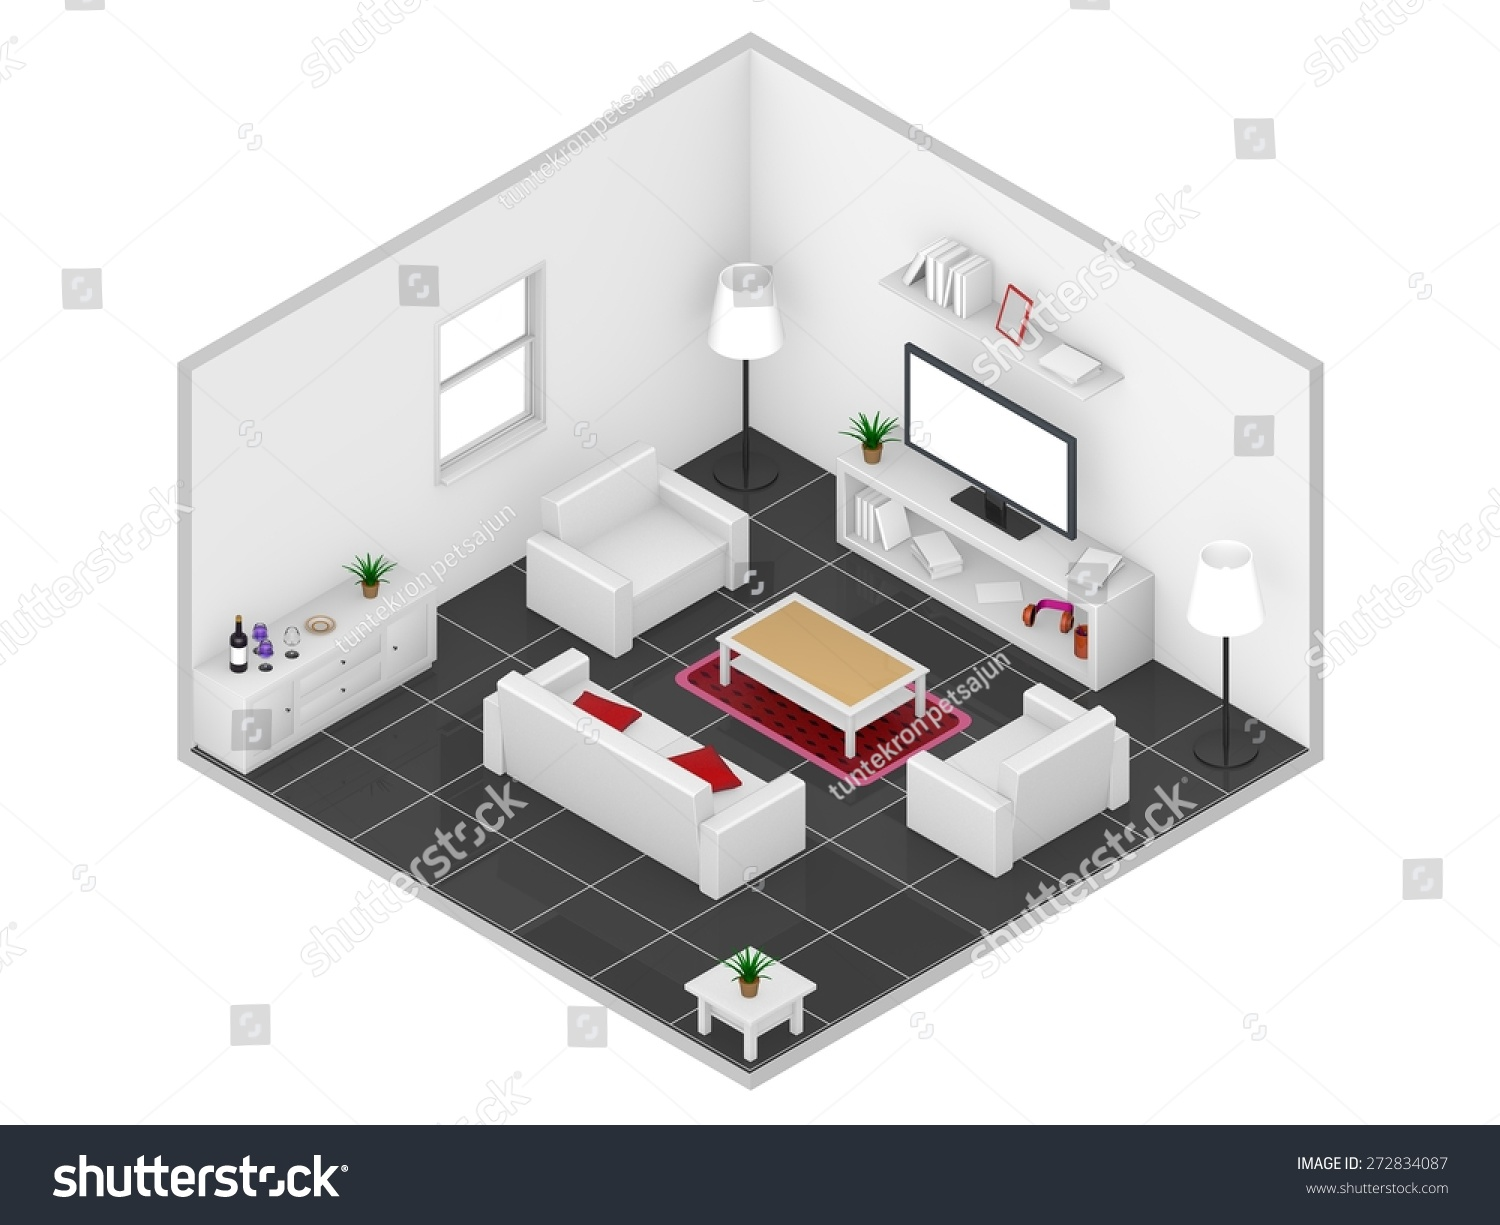 Isometric view of bedroom 28 images isometric view of for 3d bedroom drawing